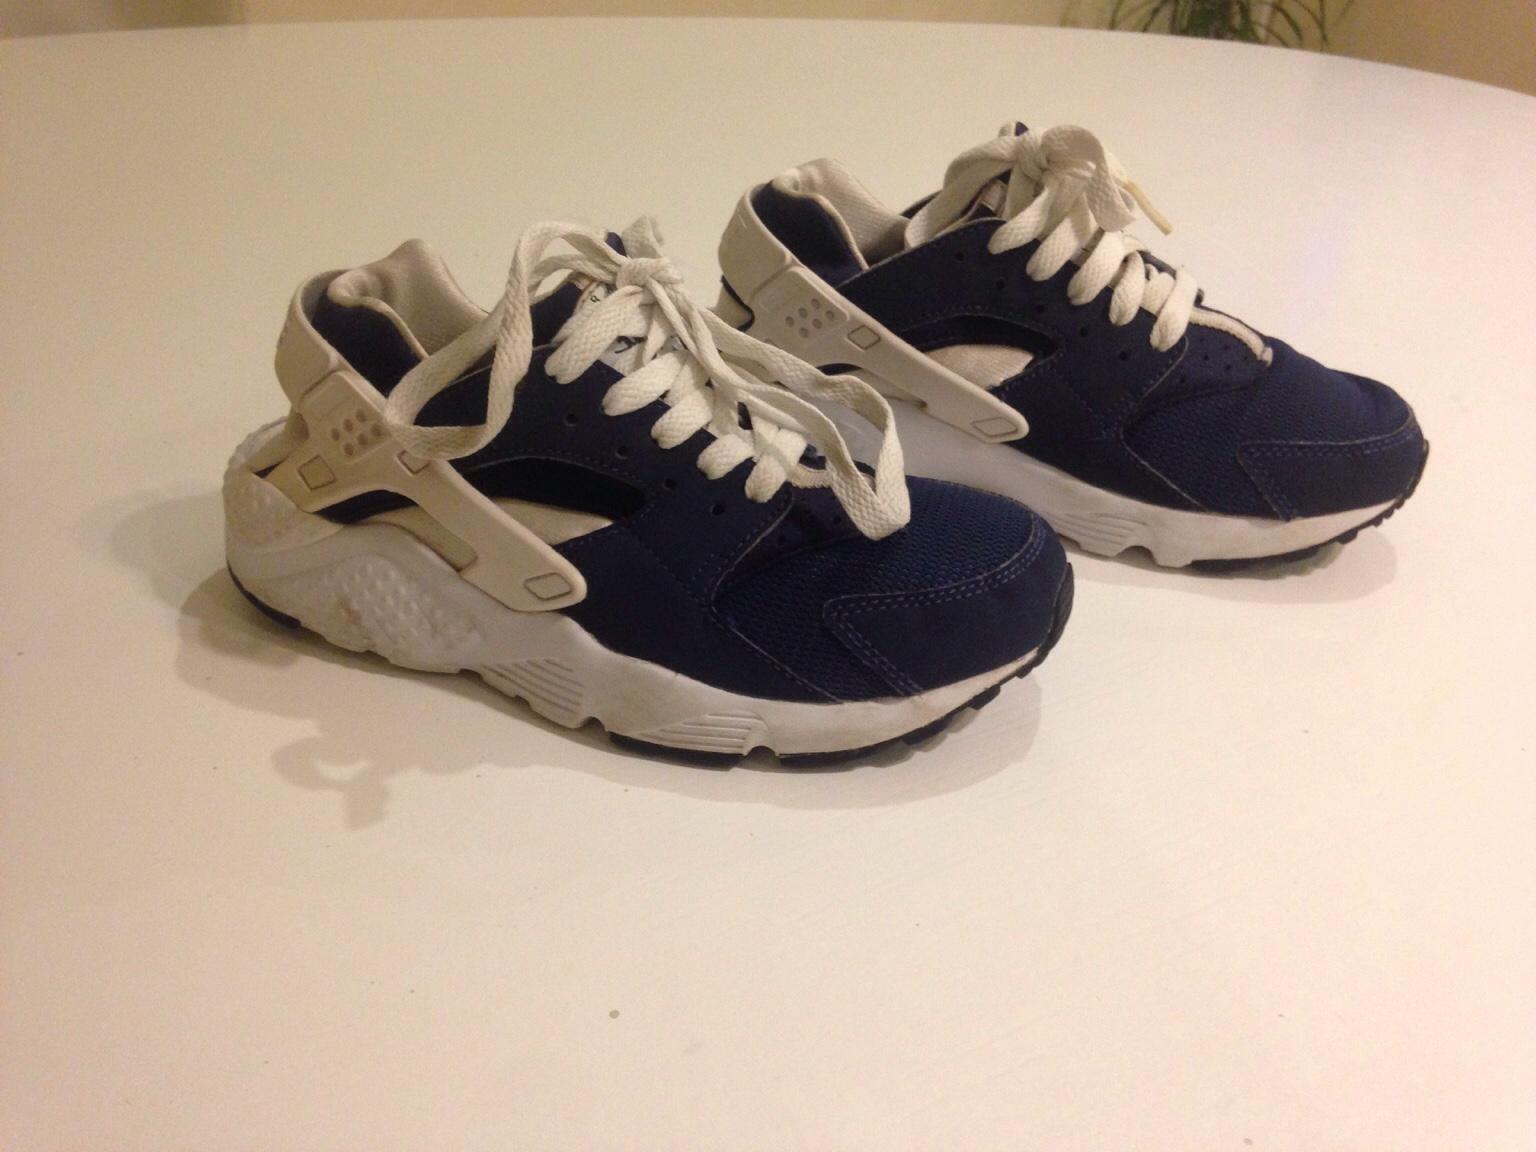 d1bcddf935900 nike huarache Fashion   Accessories - Shpock